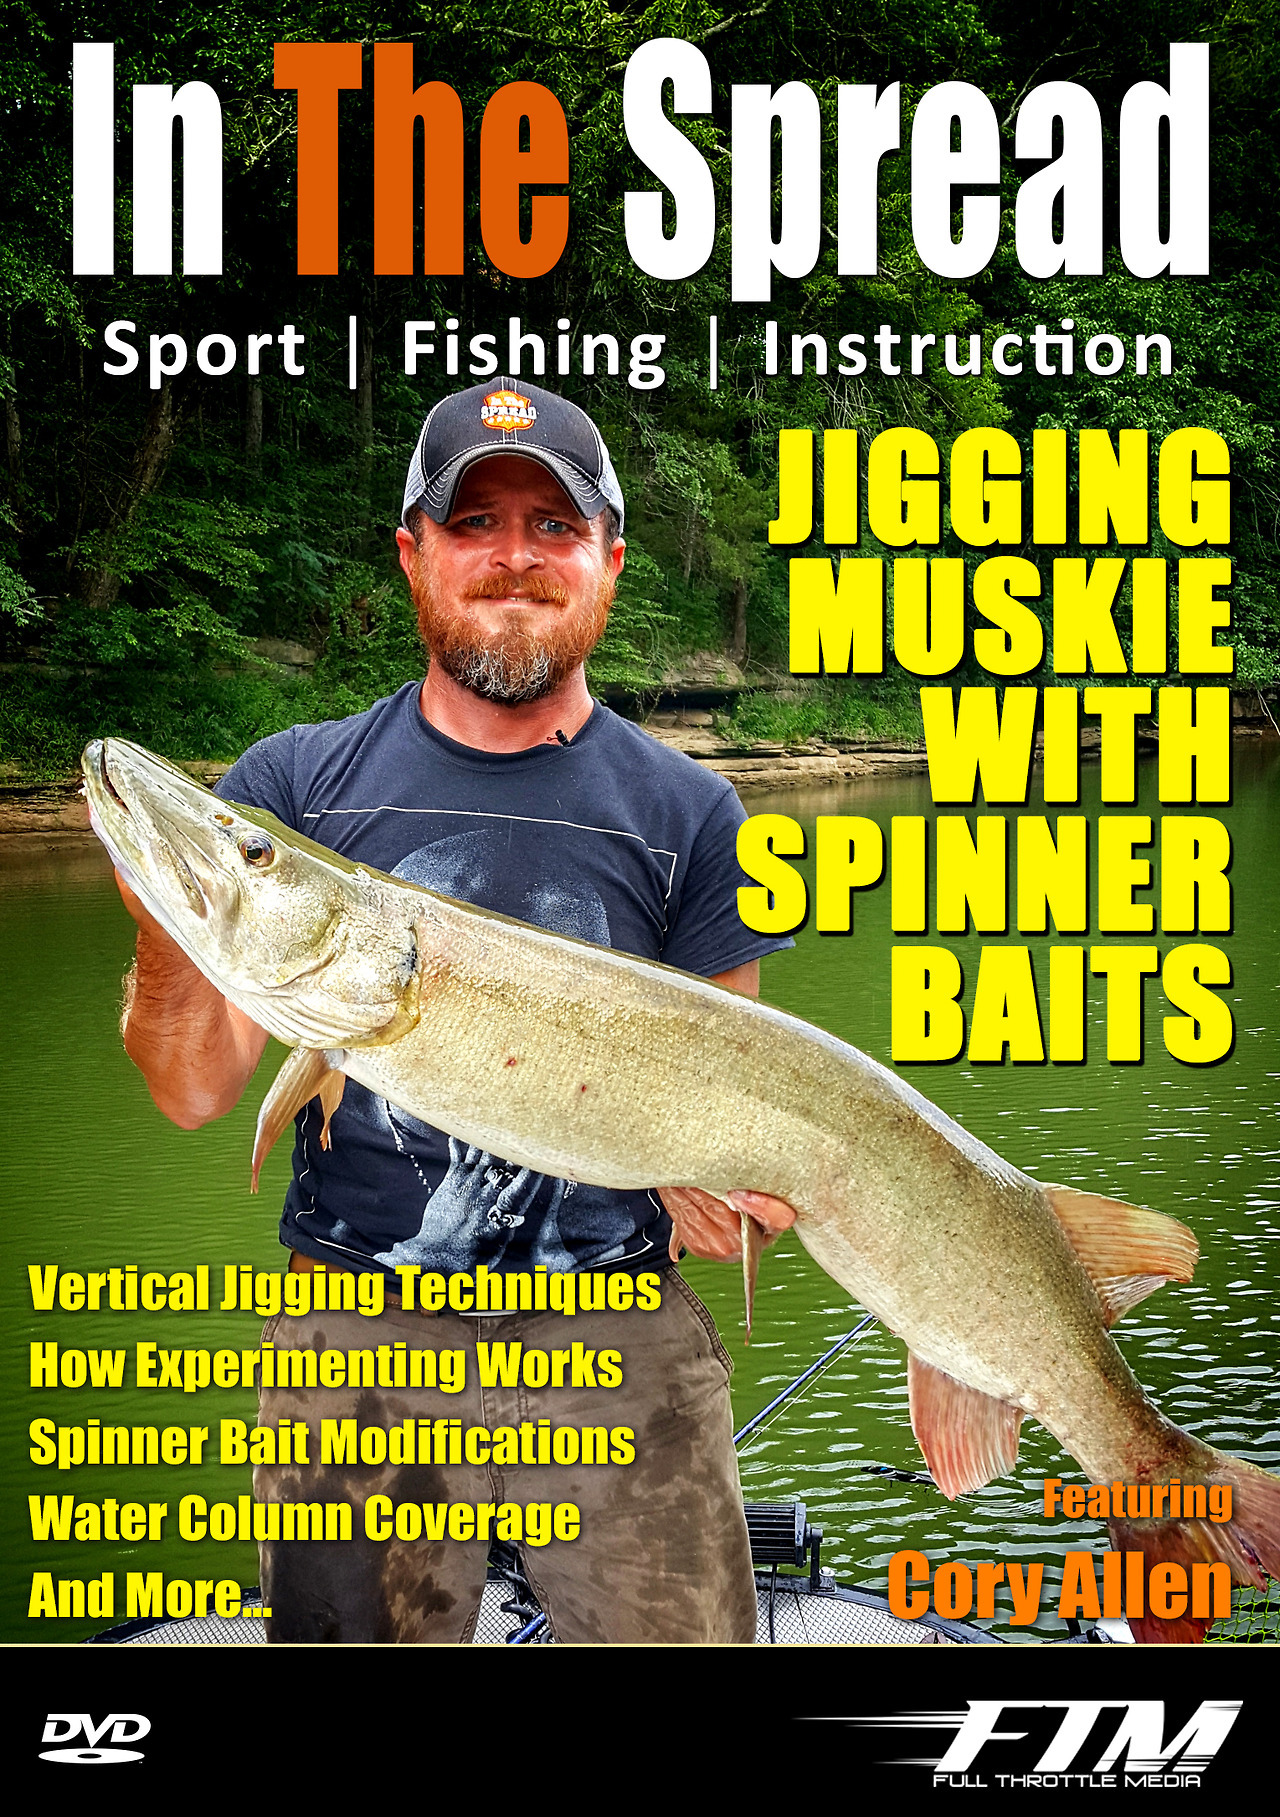 muskie fishing jigging spinner baits in the spread cory allen video